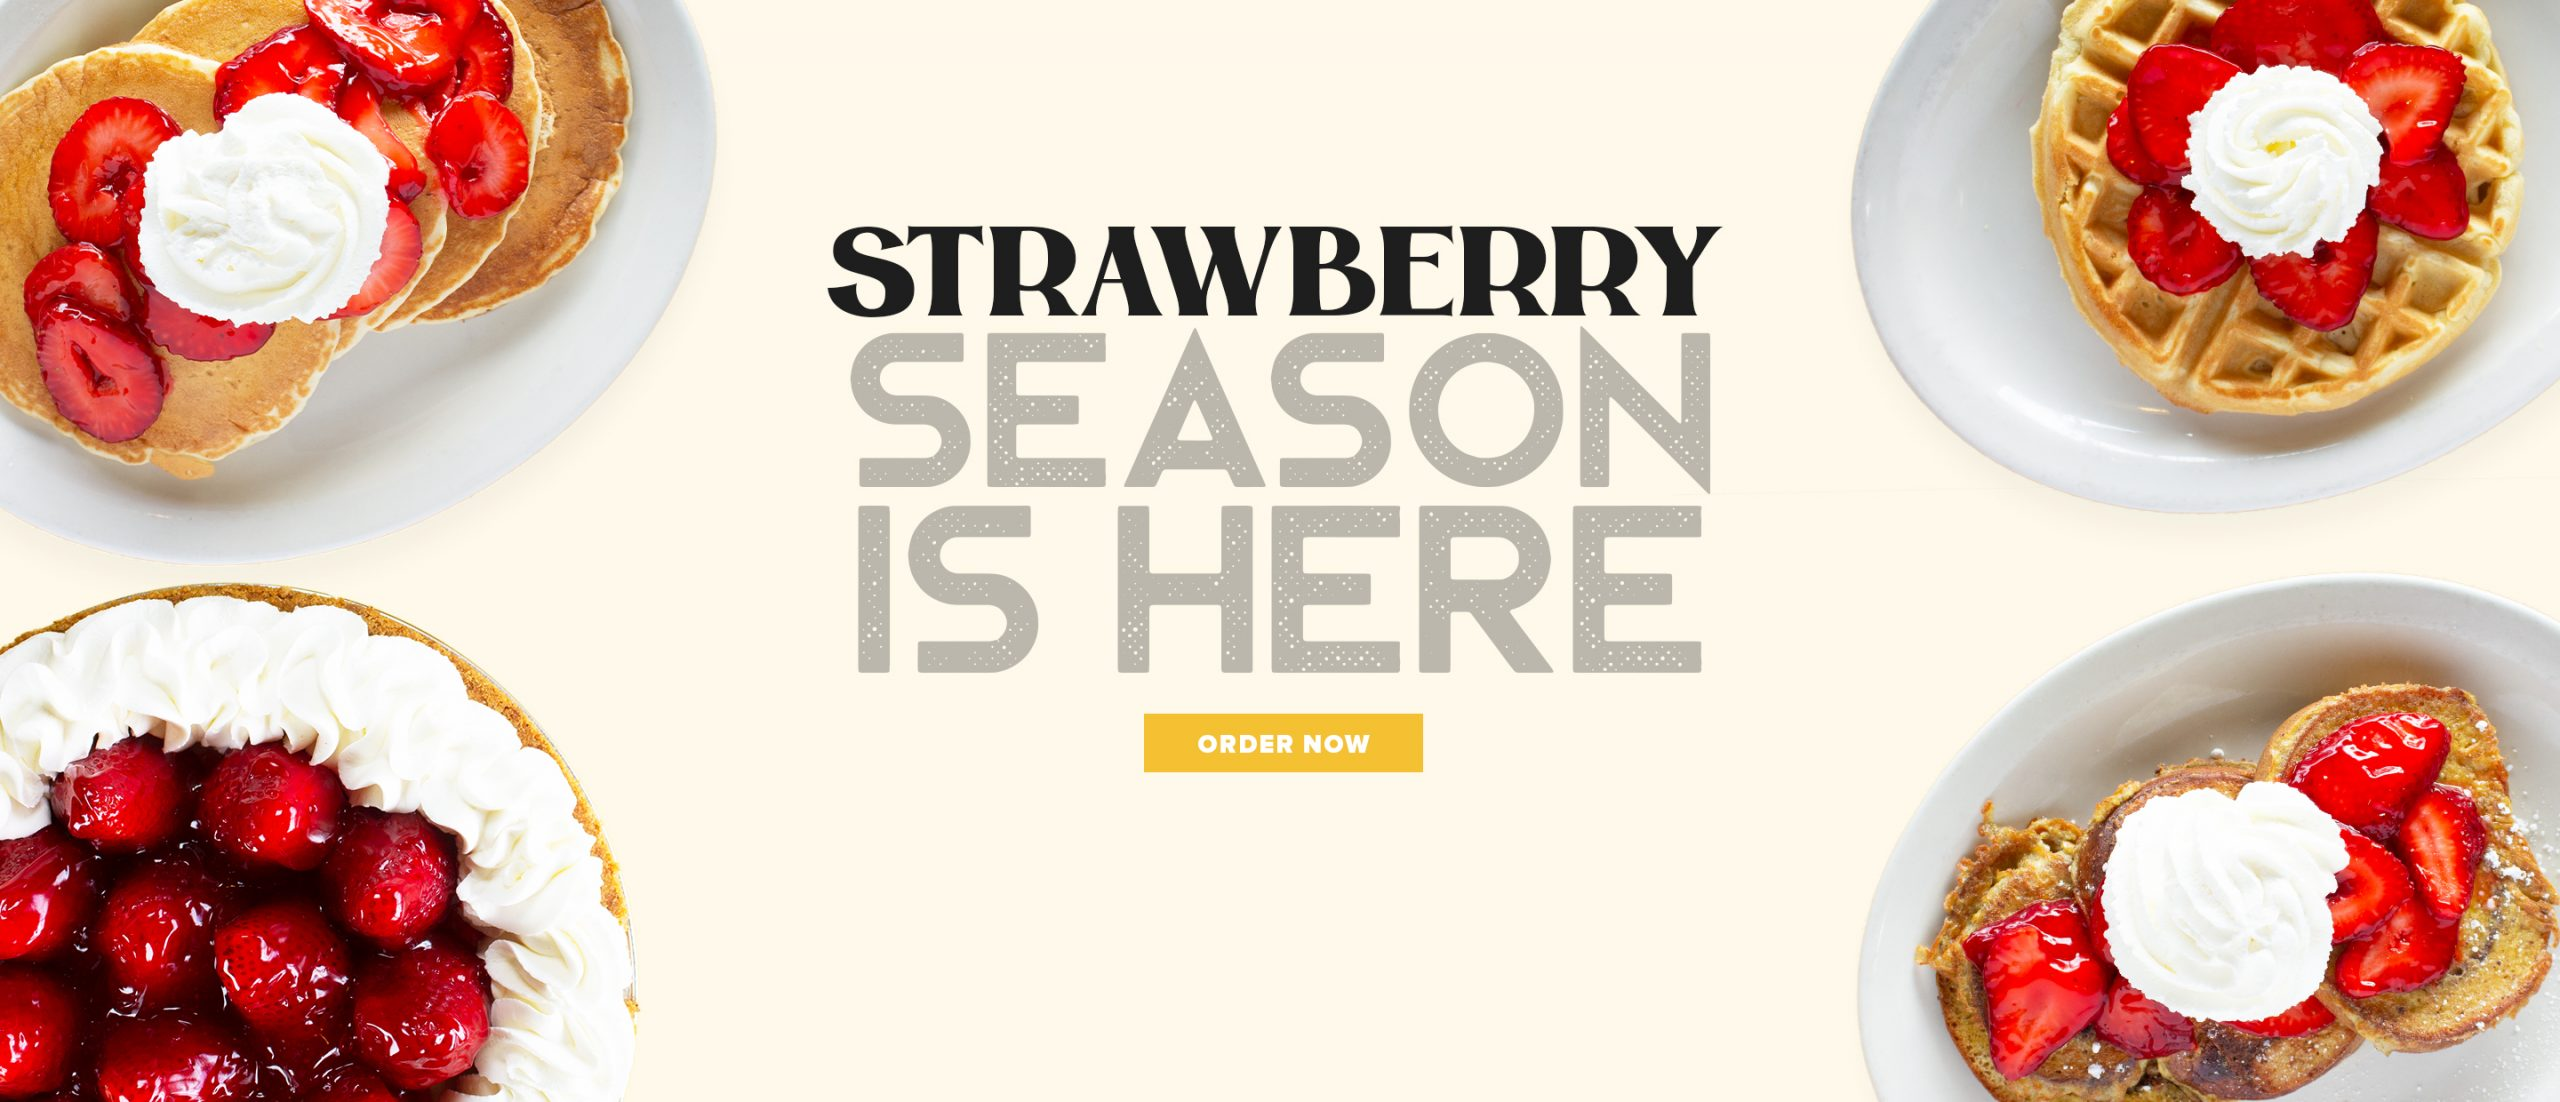 Strawberry season is here! Order now